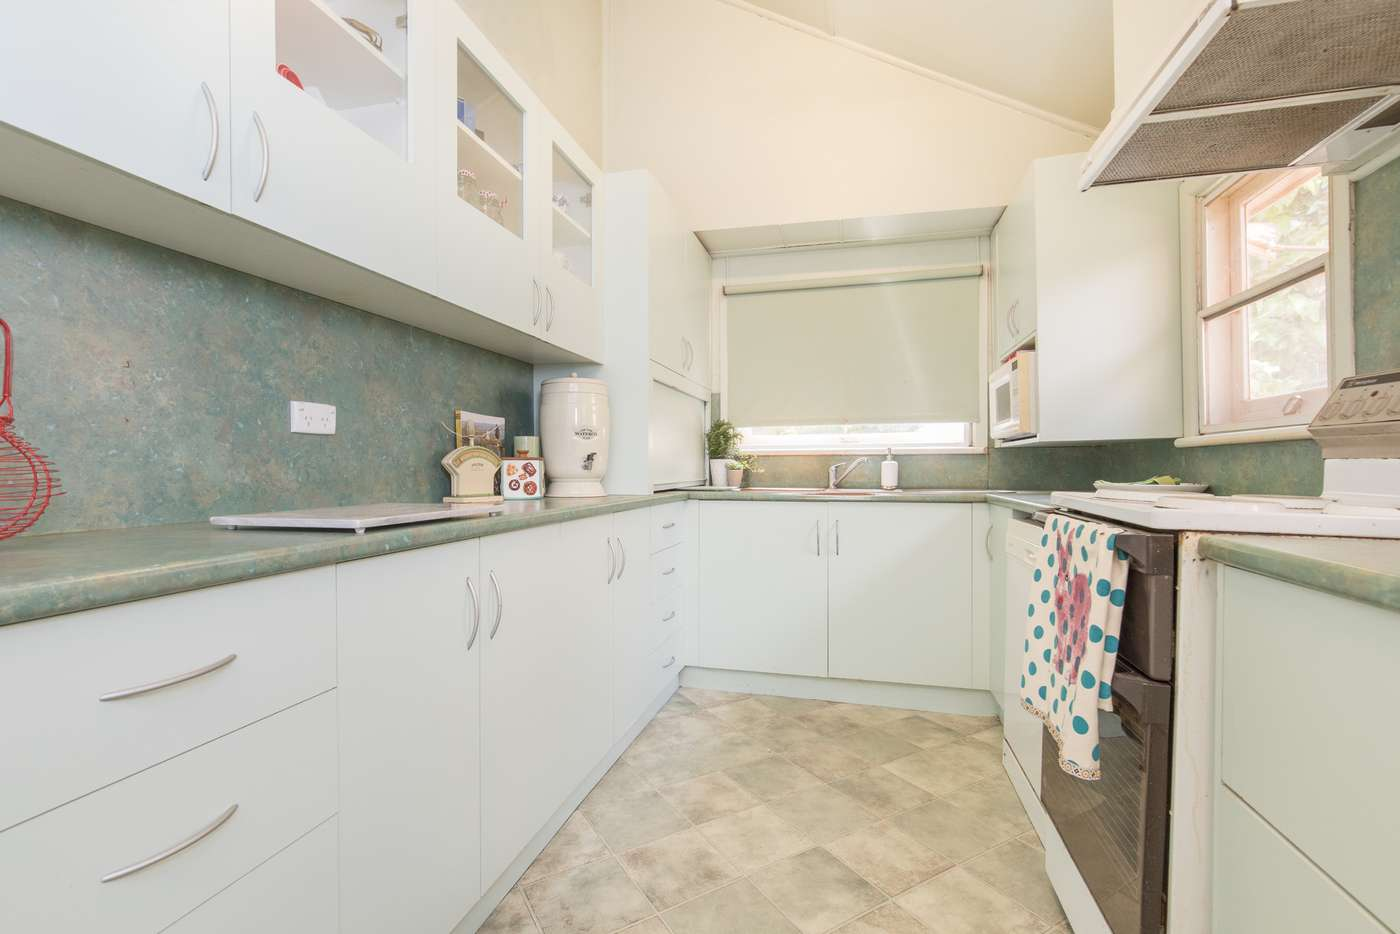 Sixth view of Homely house listing, 430 Mcedward Street, Birdwoodton VIC 3505